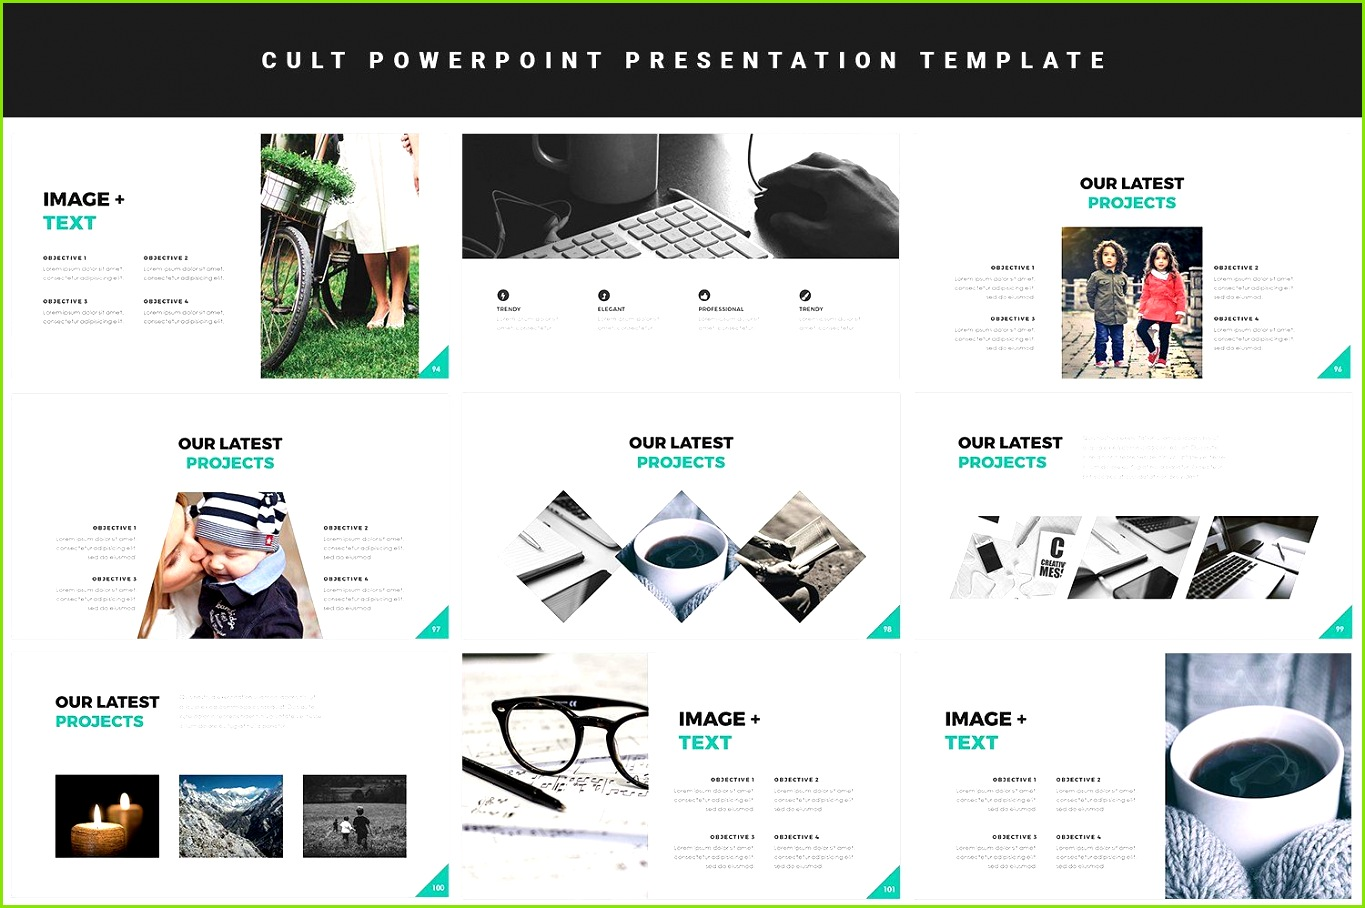 Powerpoint Template Cult Cult Features master Powerpoint